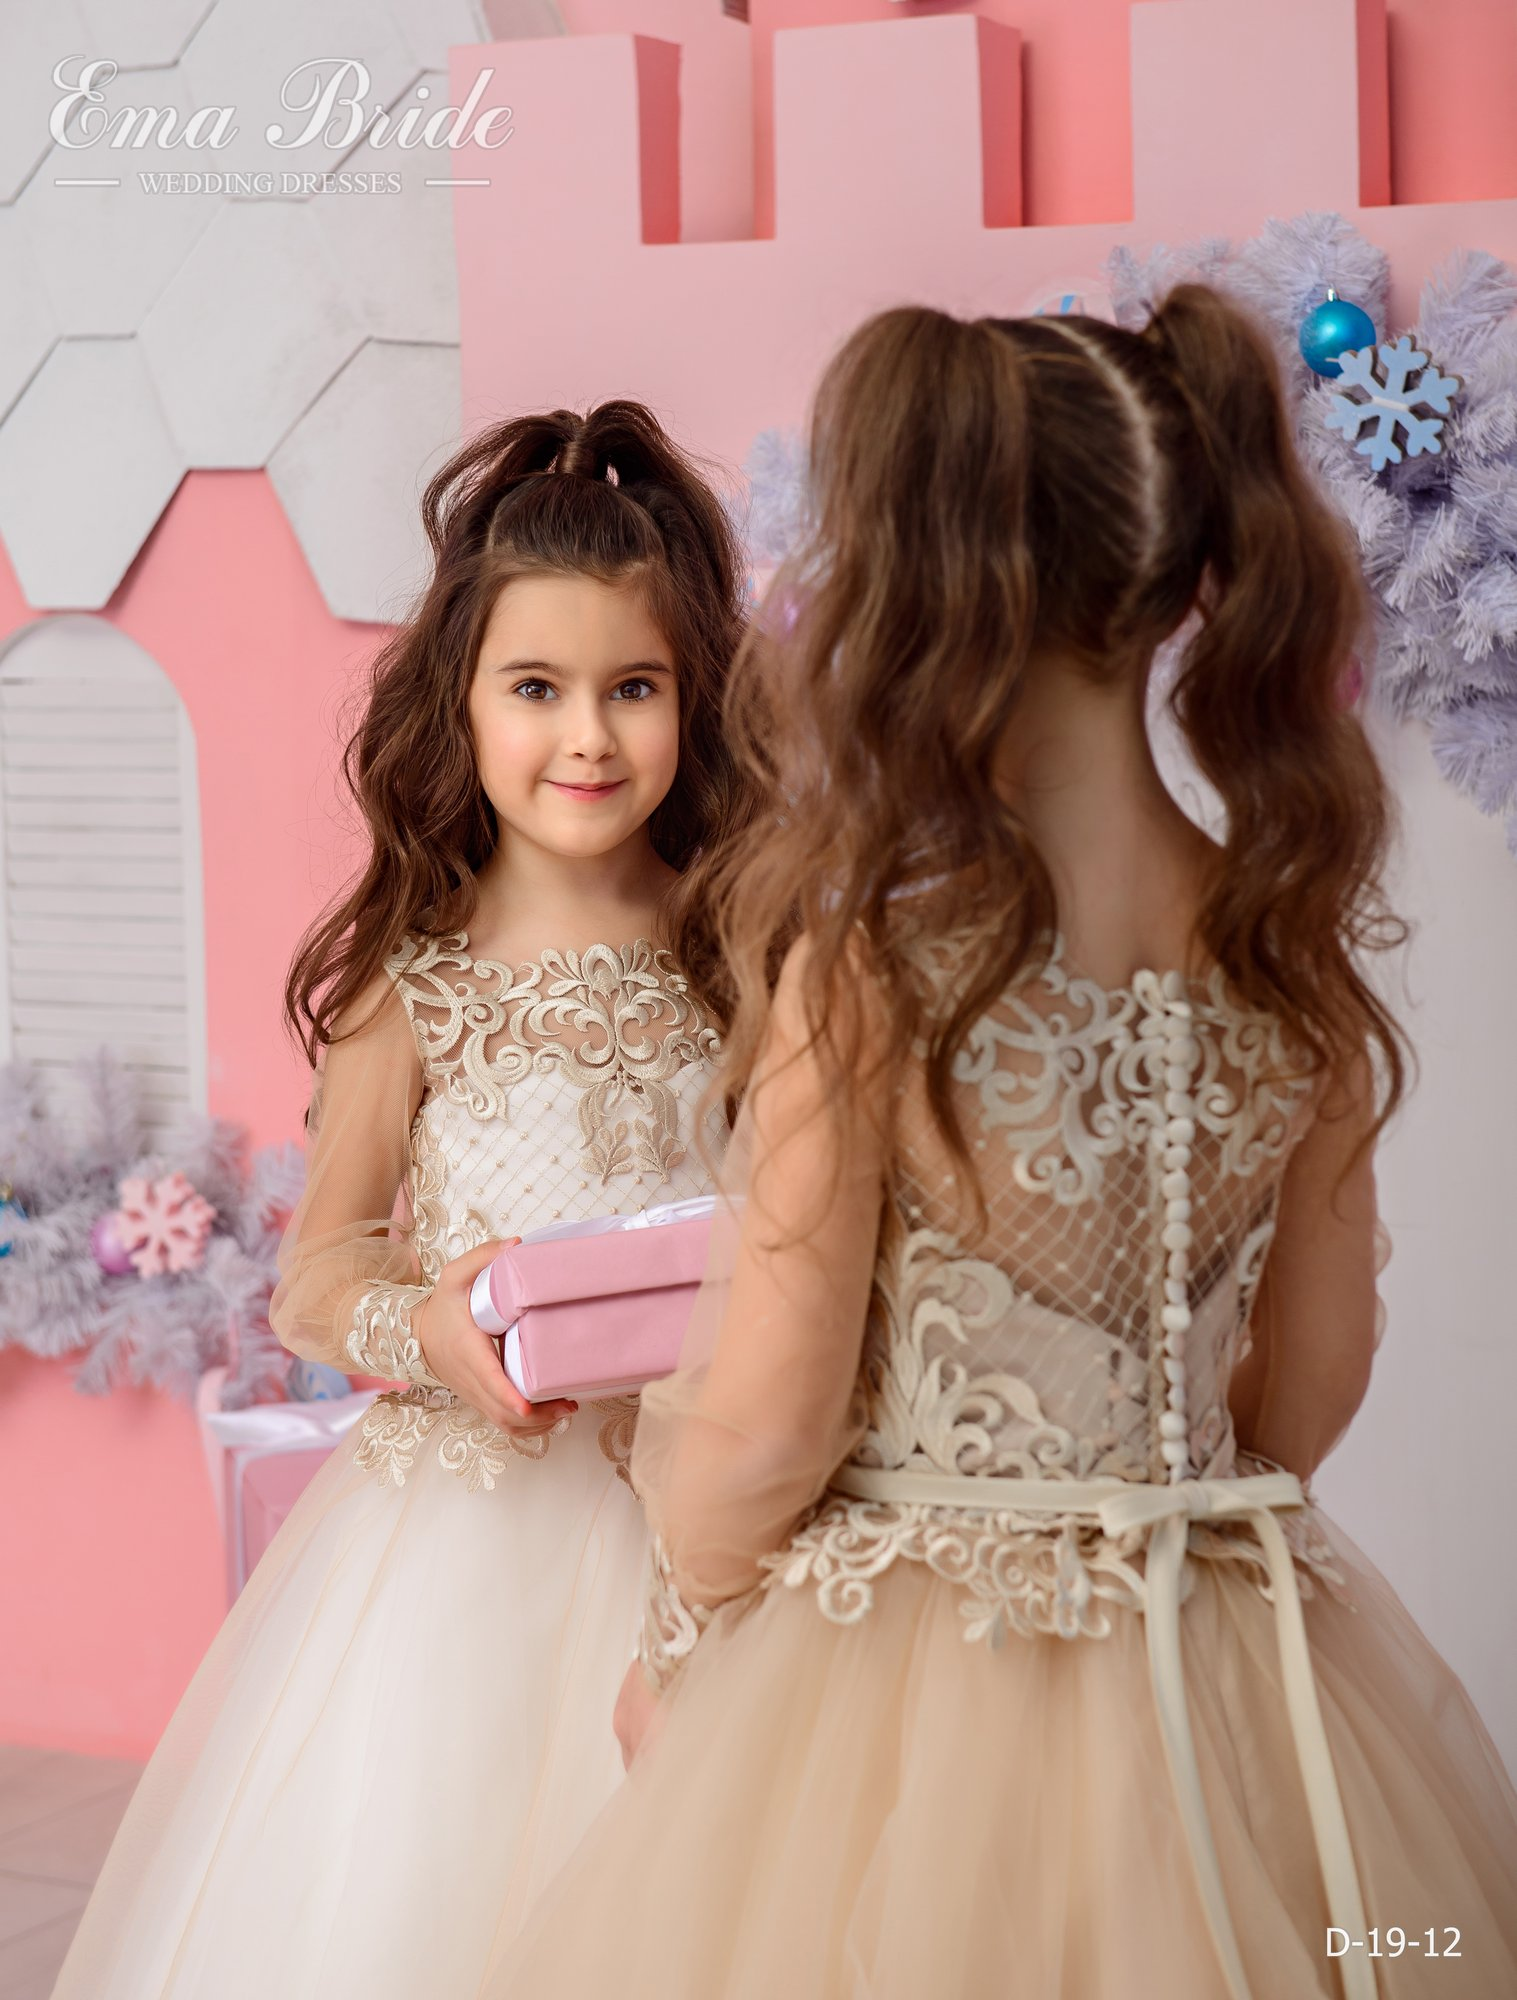 Children's dress by EmaBride D-19-12 2019-3